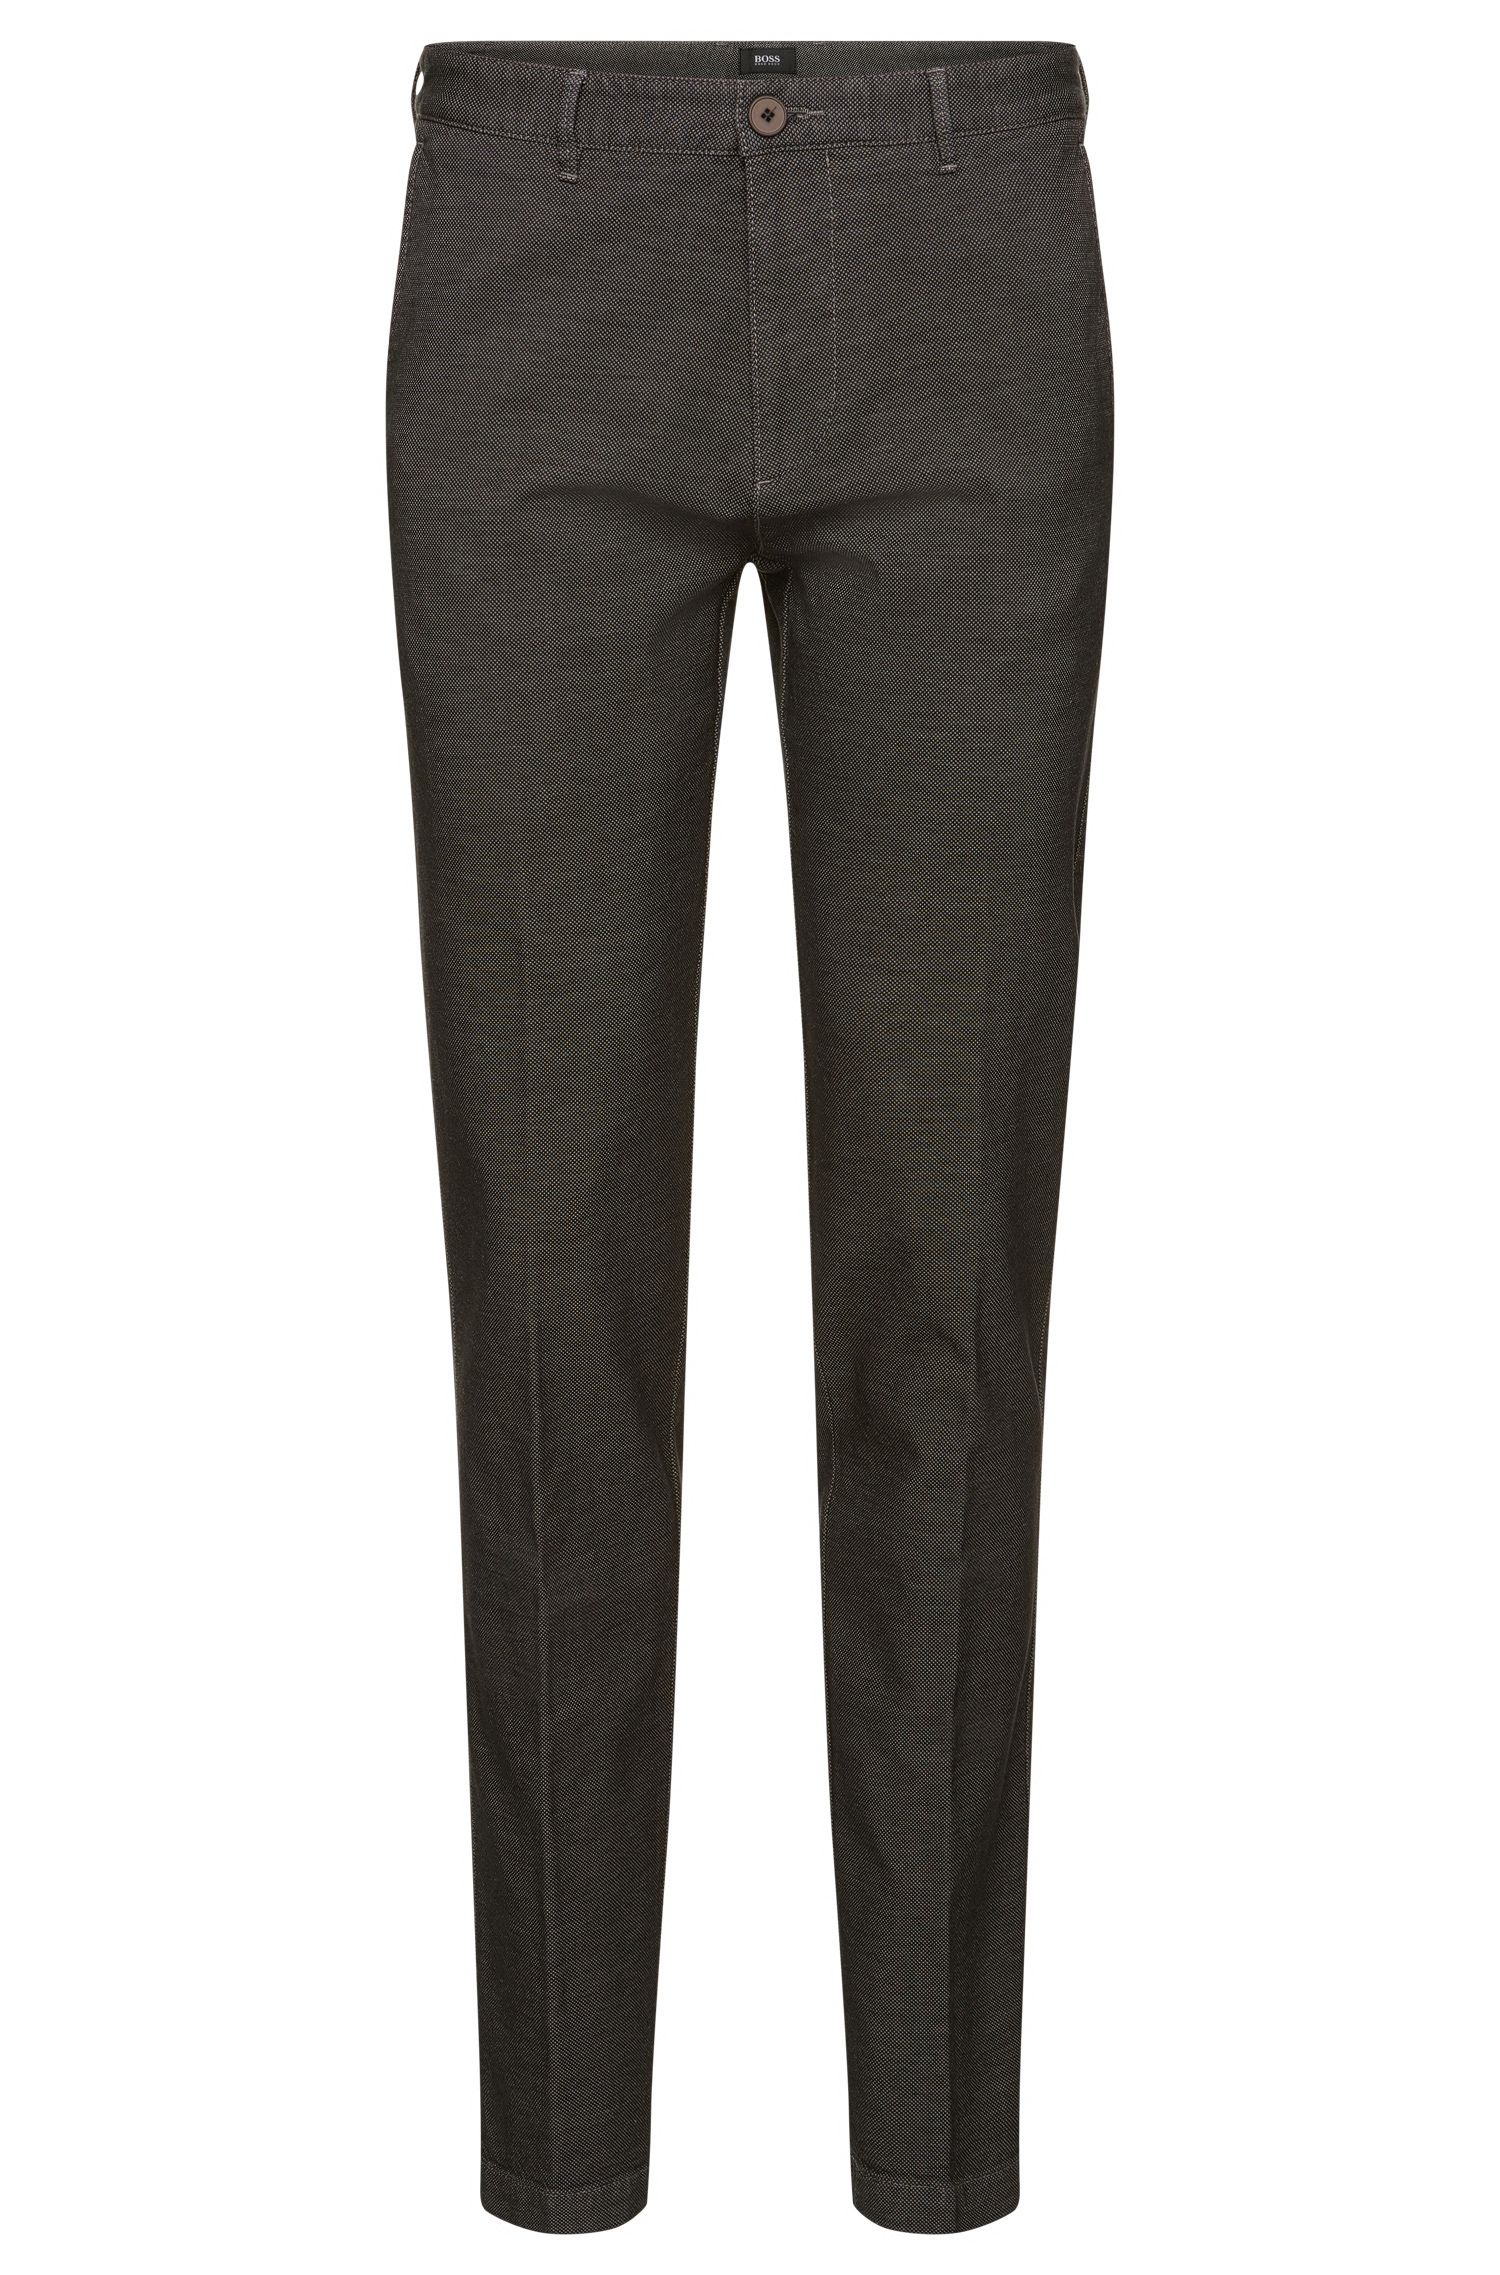 Cirgan-W' | Regular Fit, Stretch Cotton Trousers